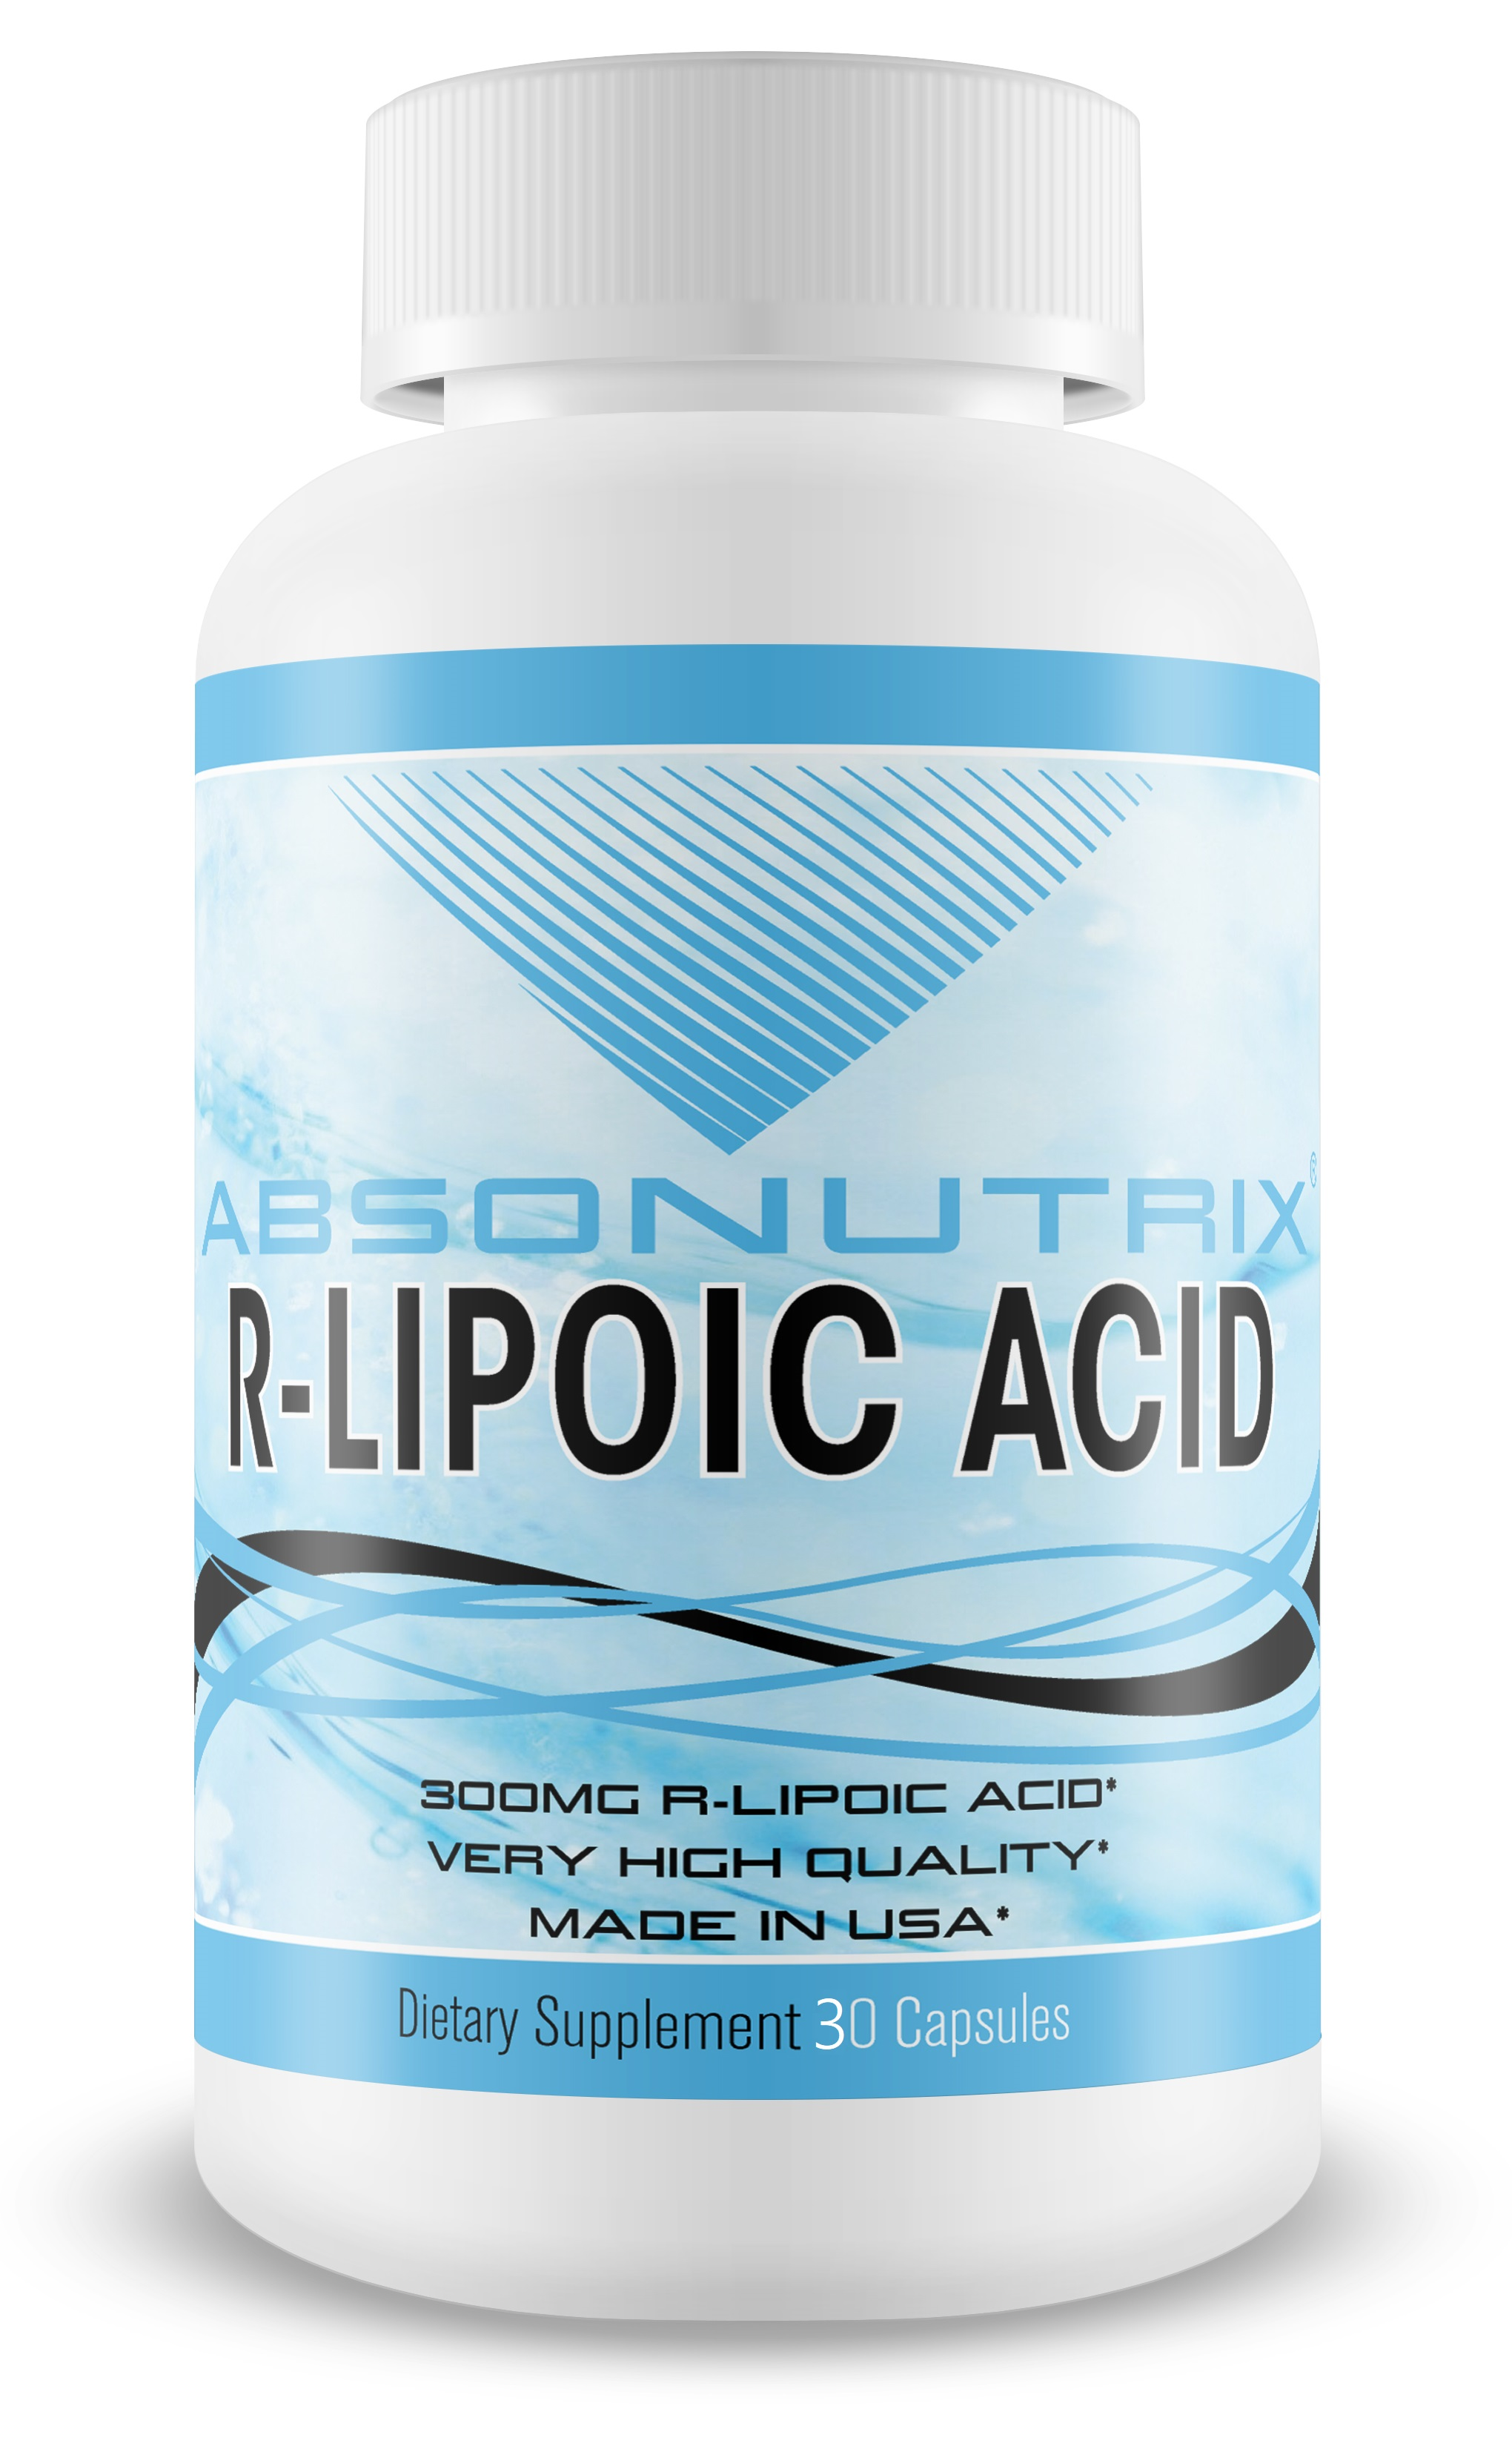 Absonutrix R-Lipoic Acid 600 mg Antioxidant Made in USA 30 capsules